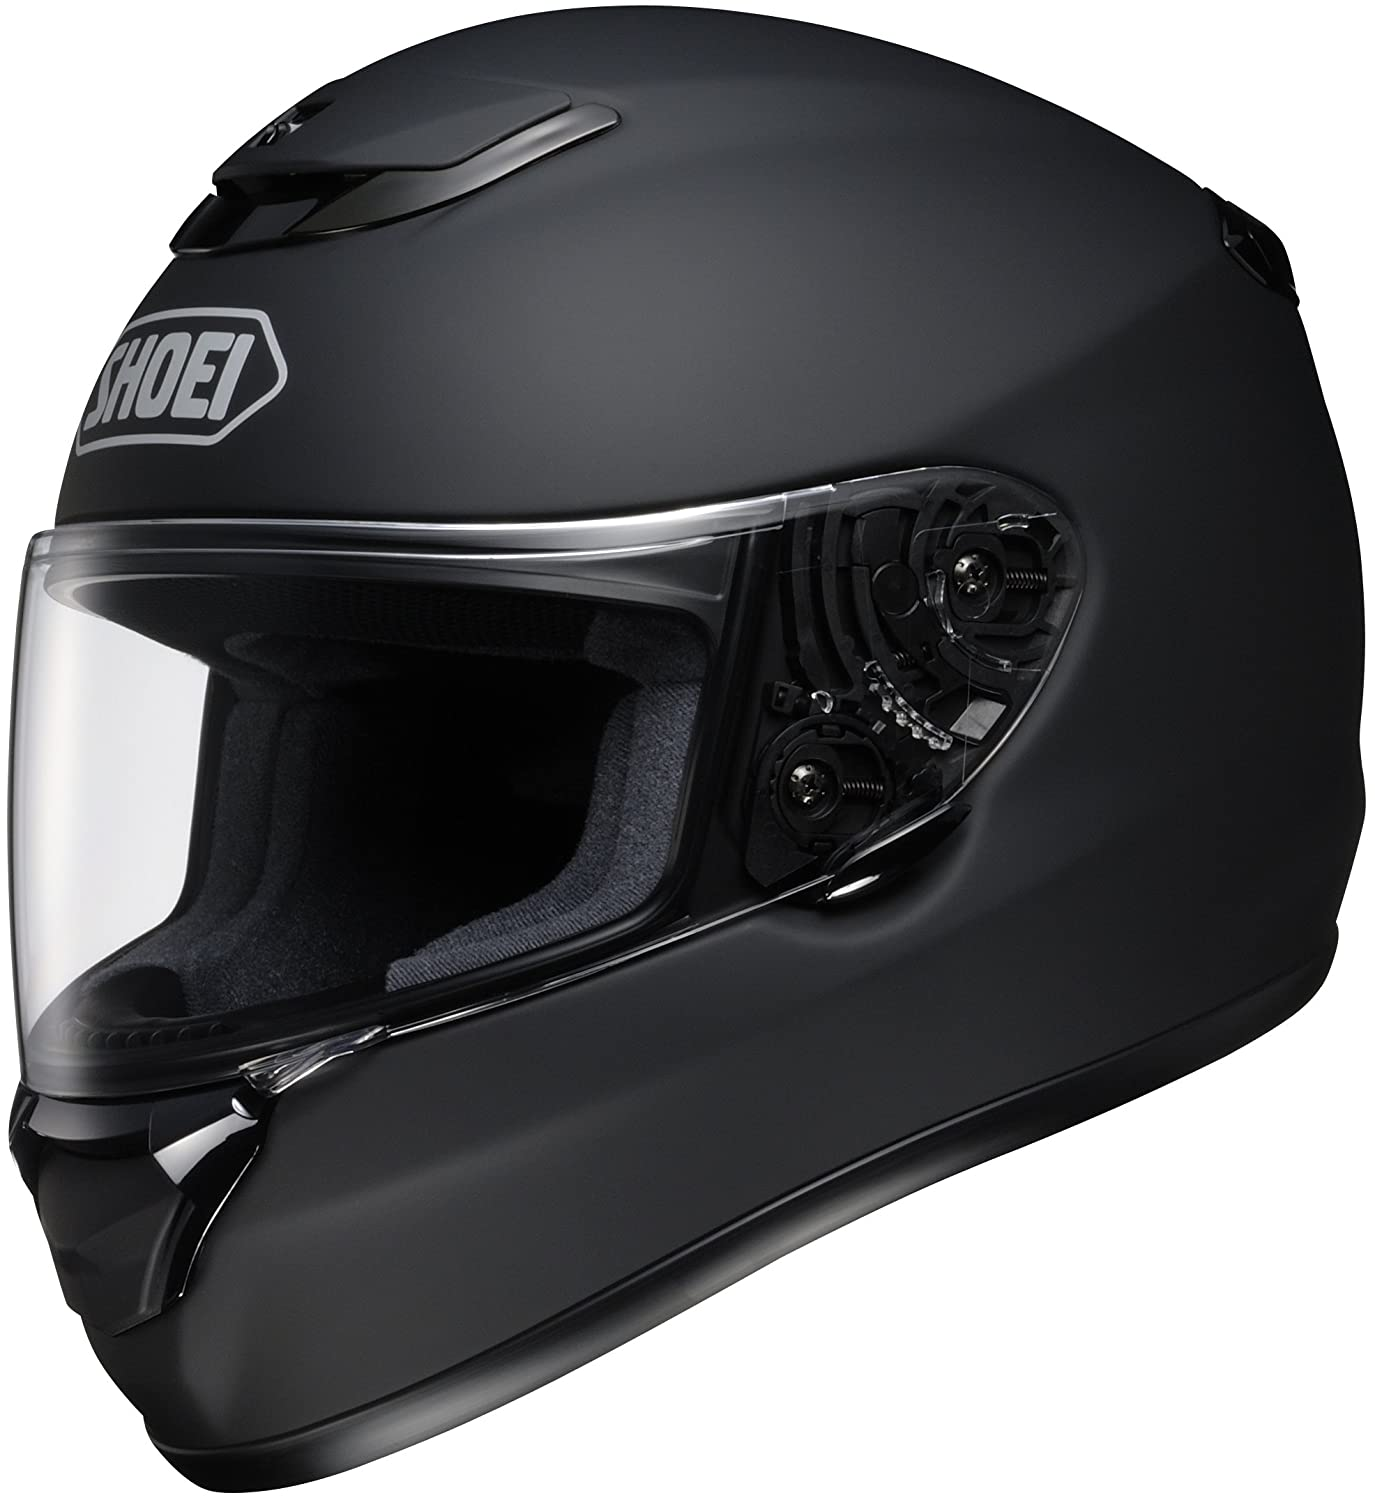 Shoei Qwest In-Depth Review - Quietest Motorcycle Helmet